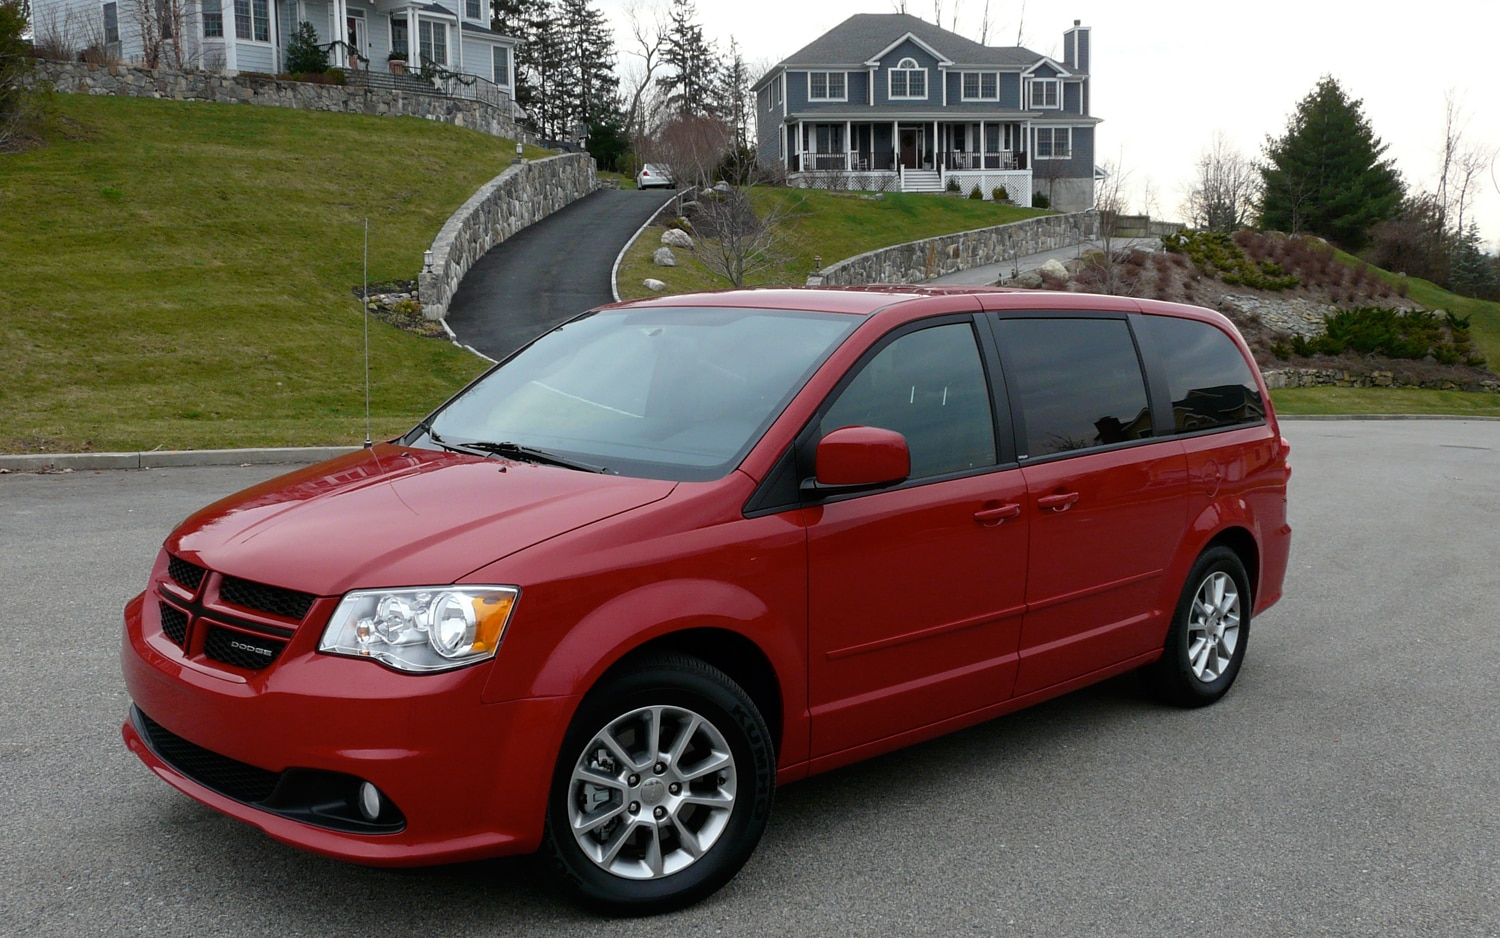 Town And Country Dodge >> Driven: 2012 Dodge Grand Caravan R/T - Automobile Magazine